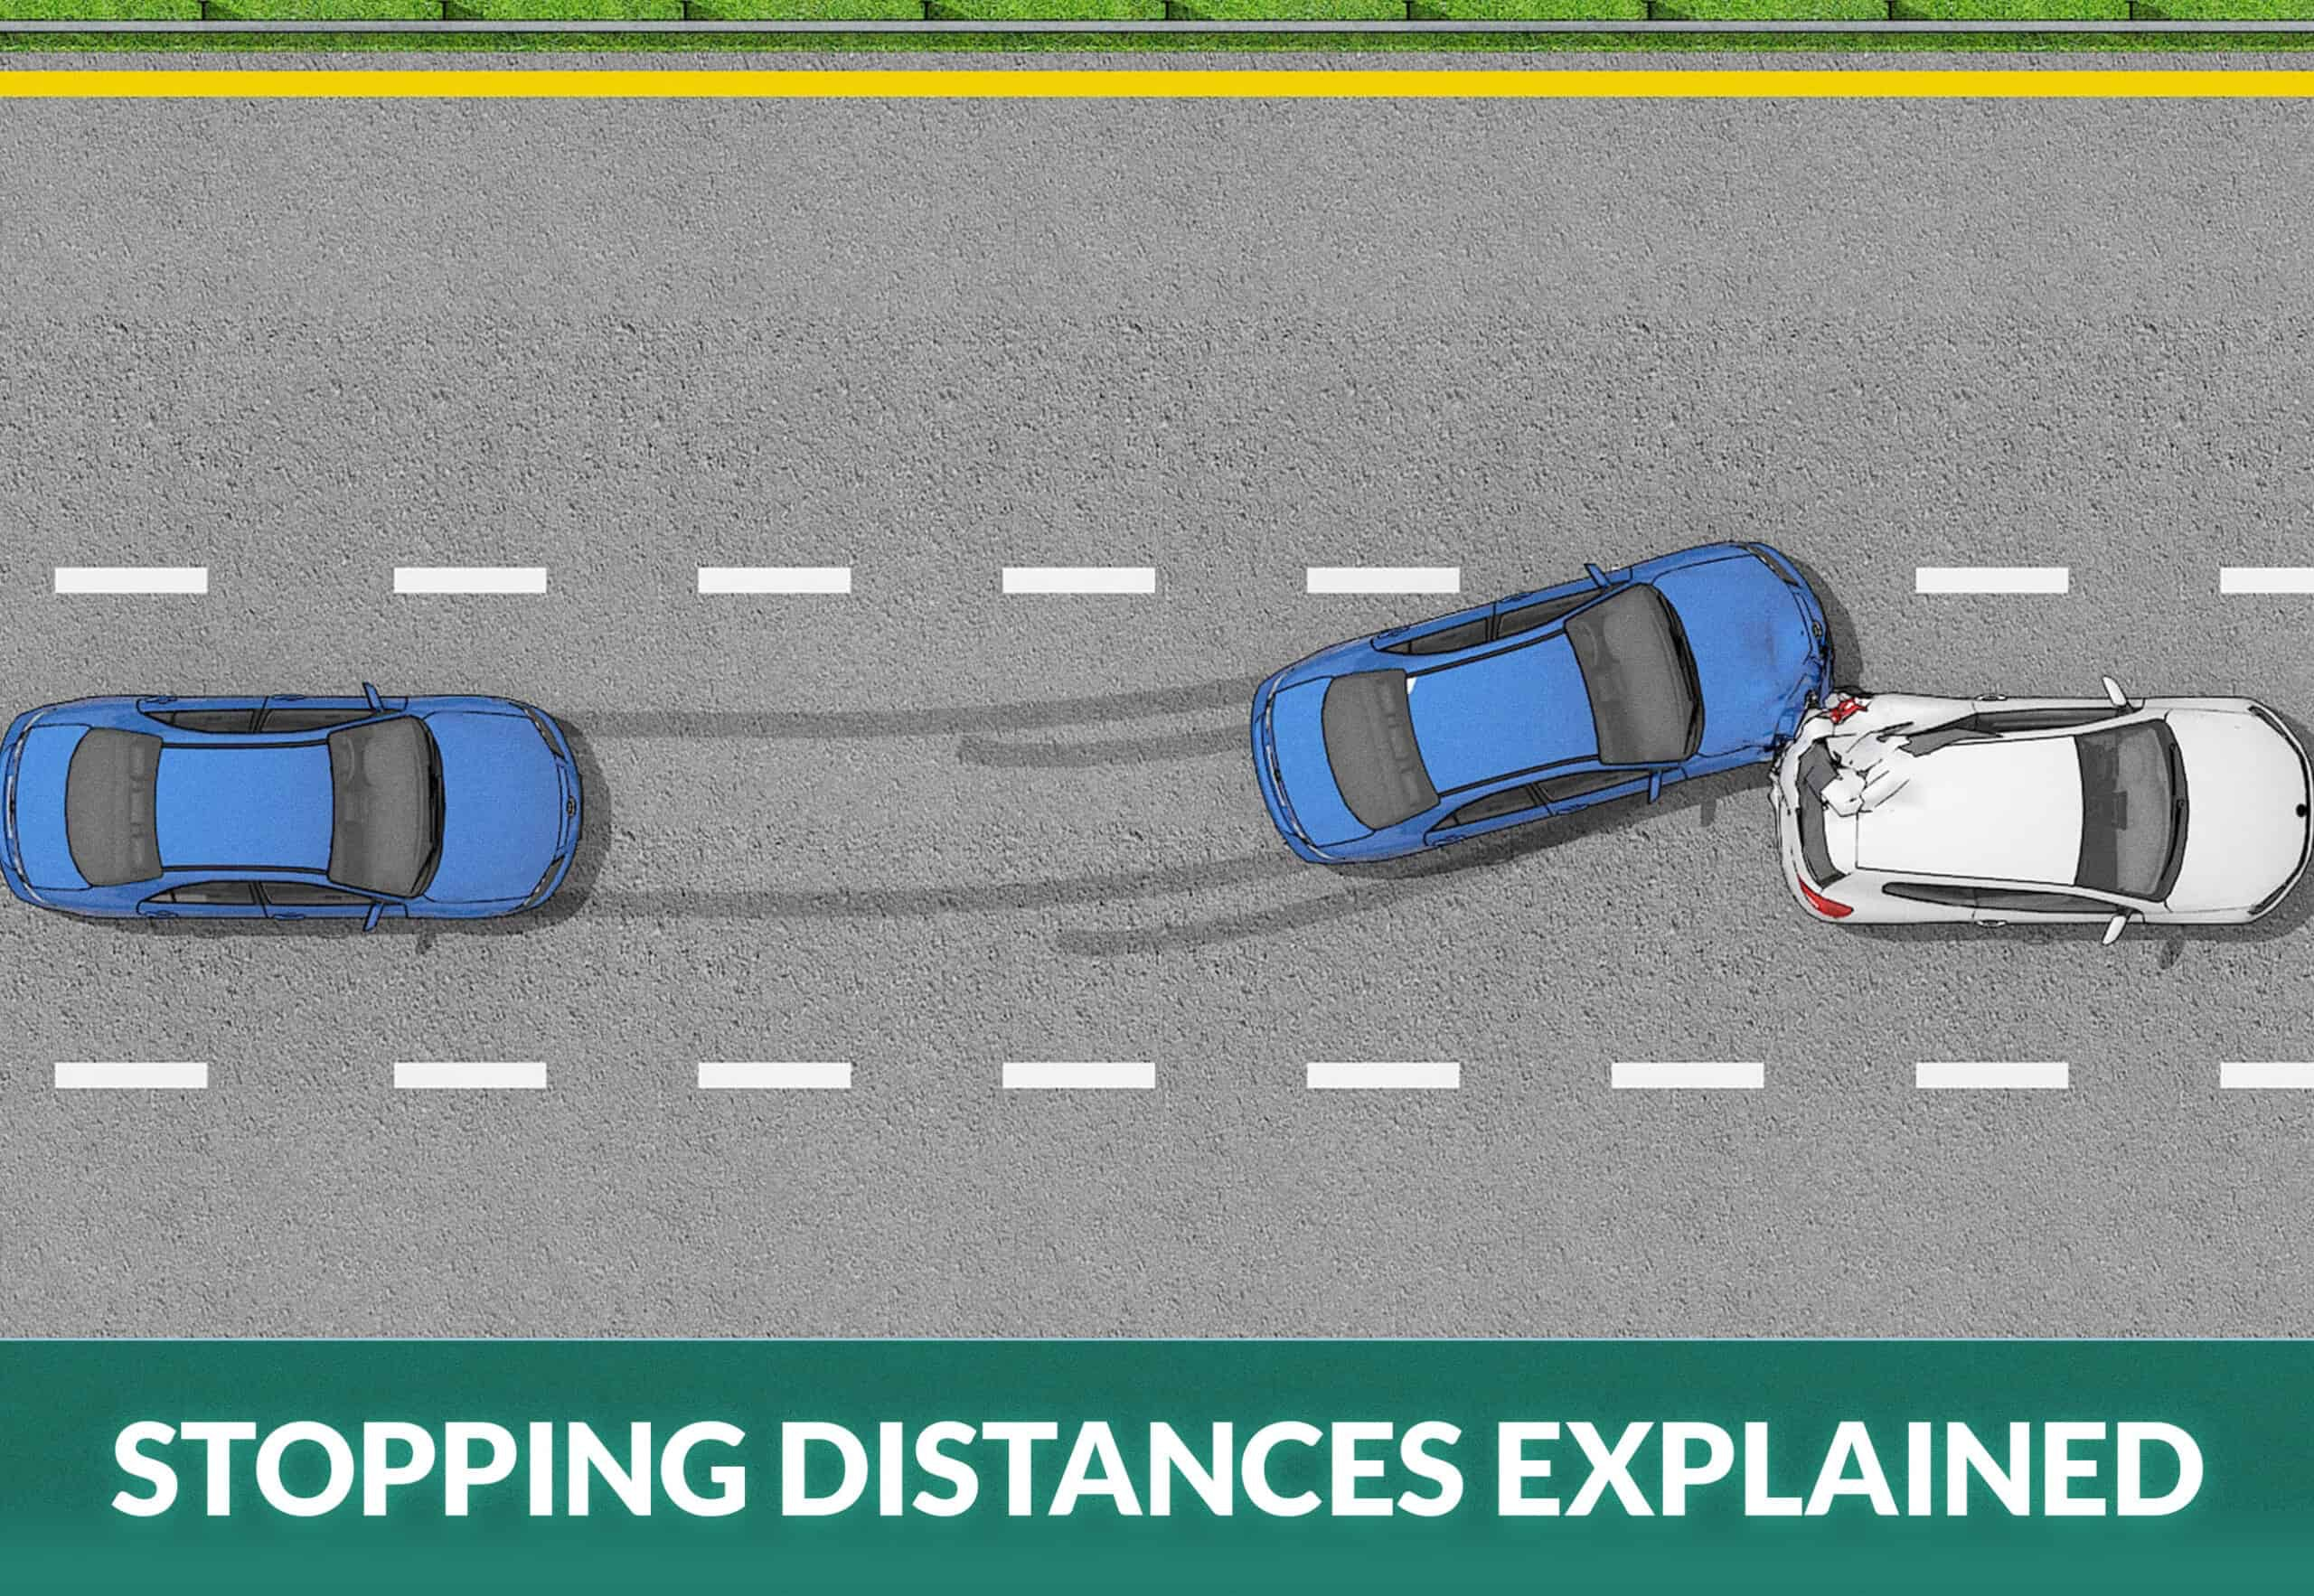 STOPPING DISTANCES EXPLAINED